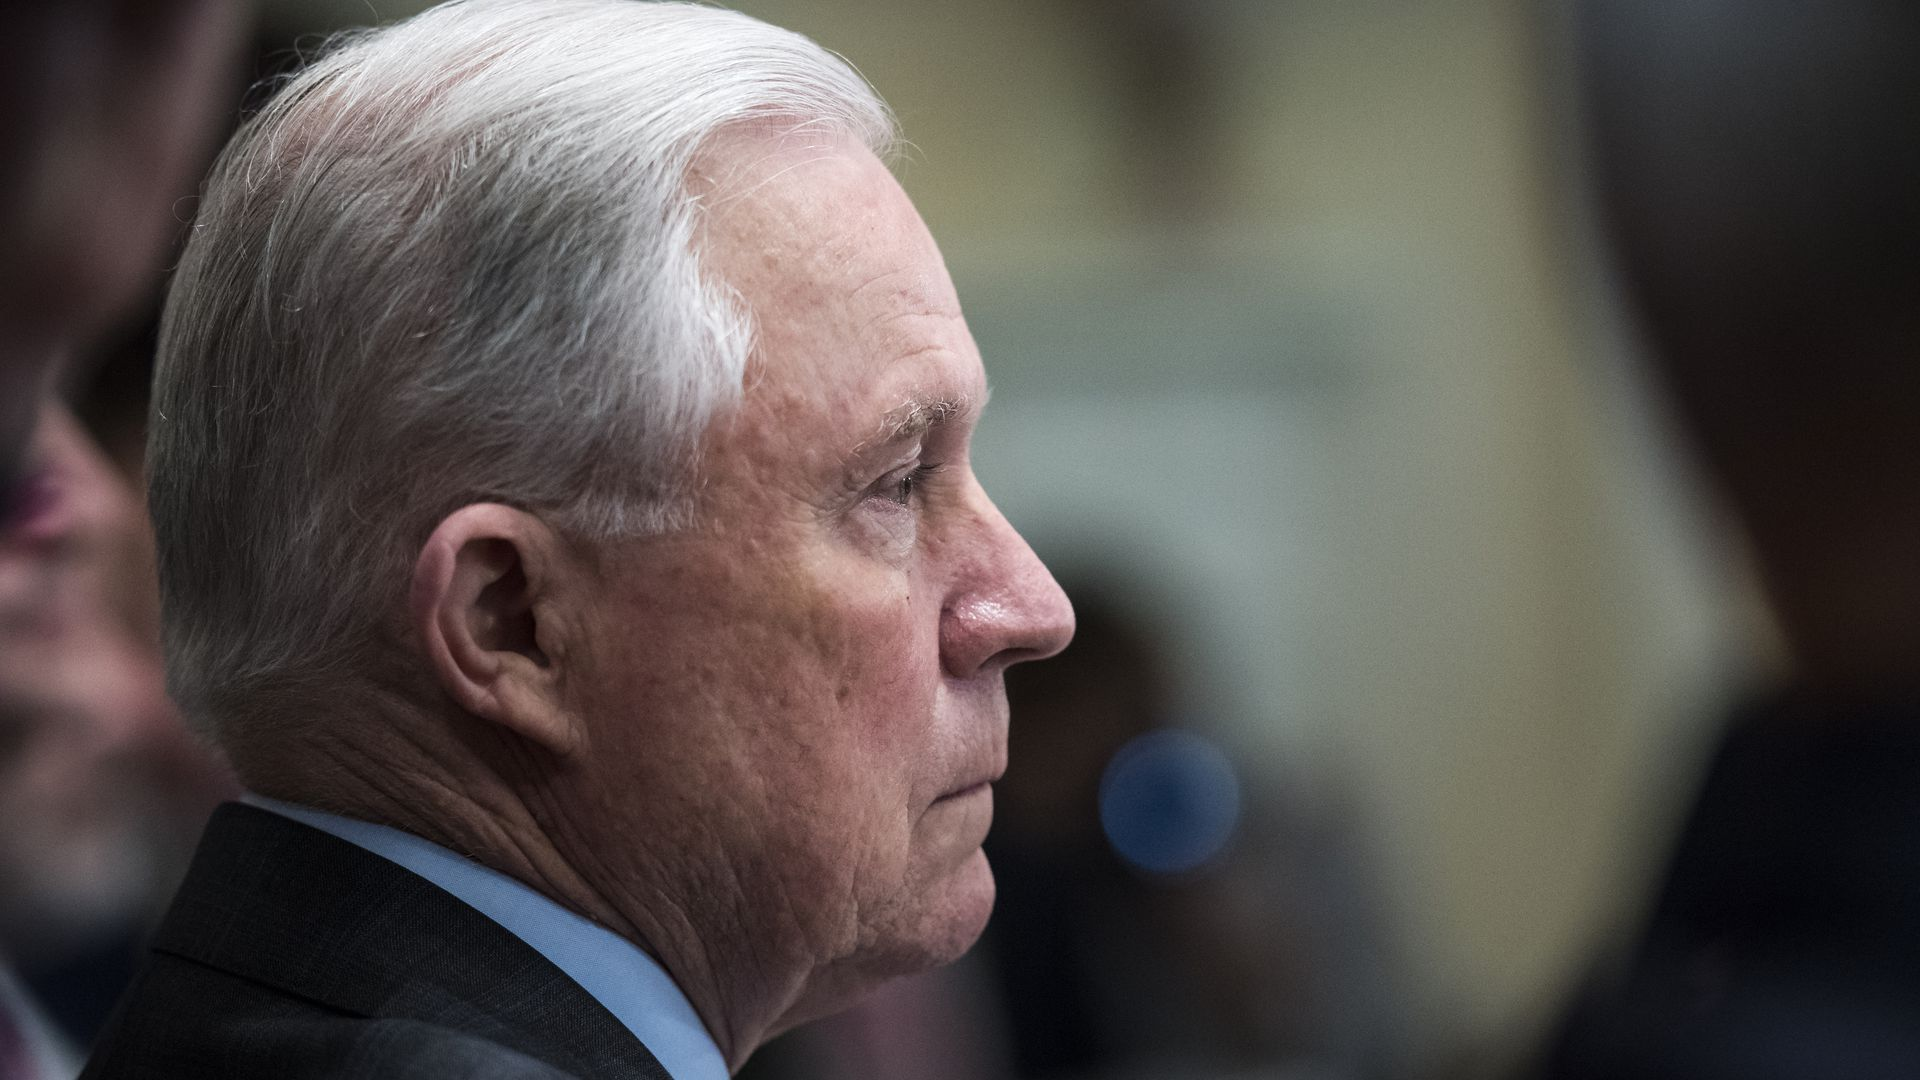 Jeff Sessions profile sitting at a table looking unhappy.